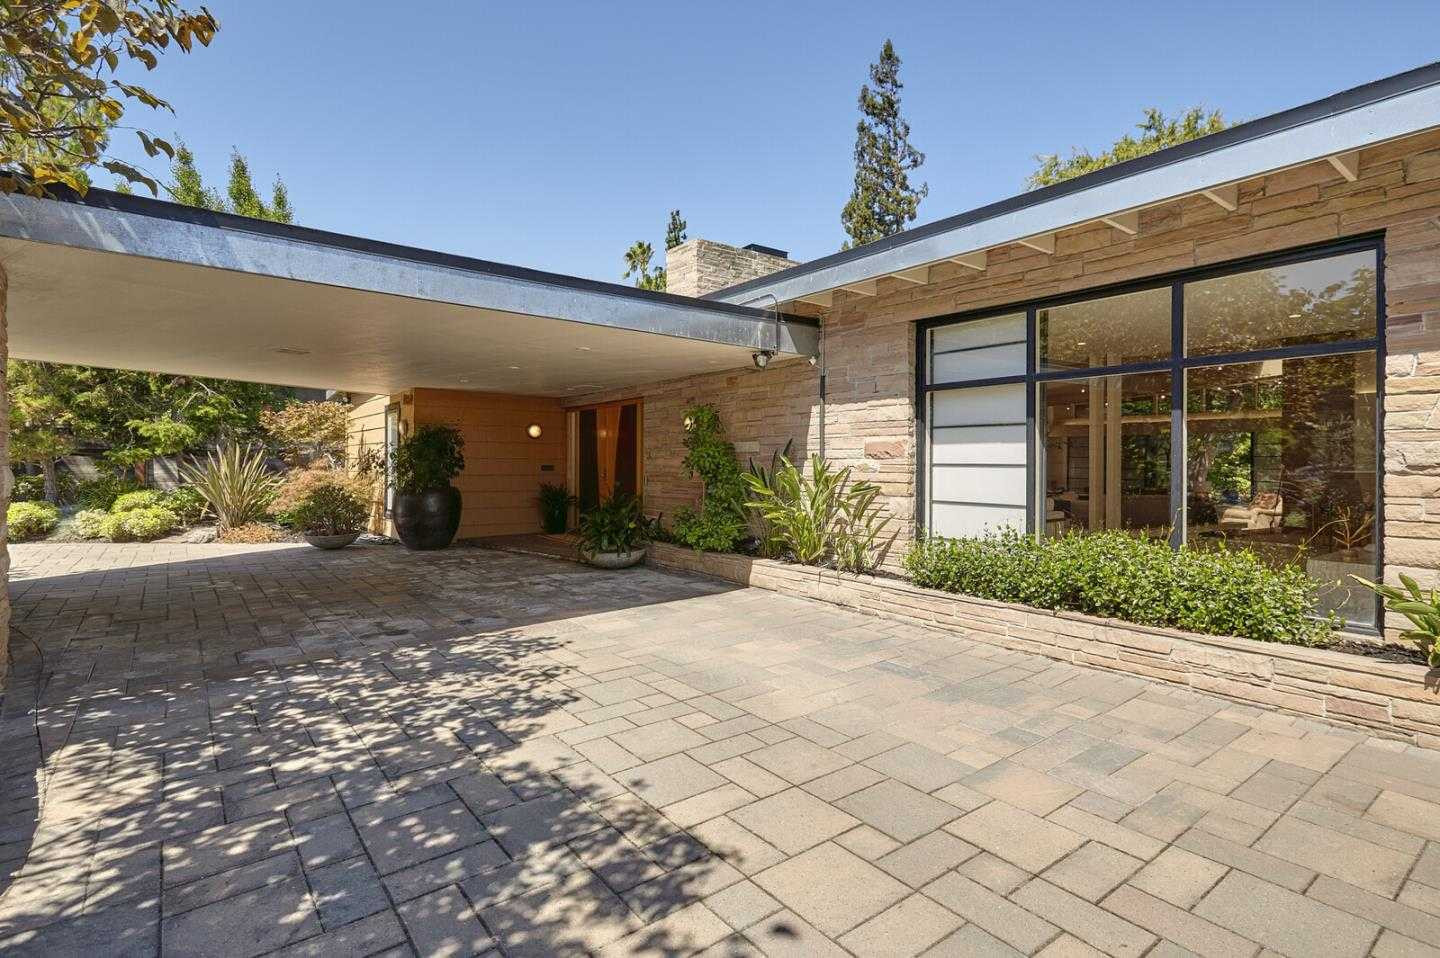 $3,699,000 - 5Br/4Ba -  for Sale in San Jose